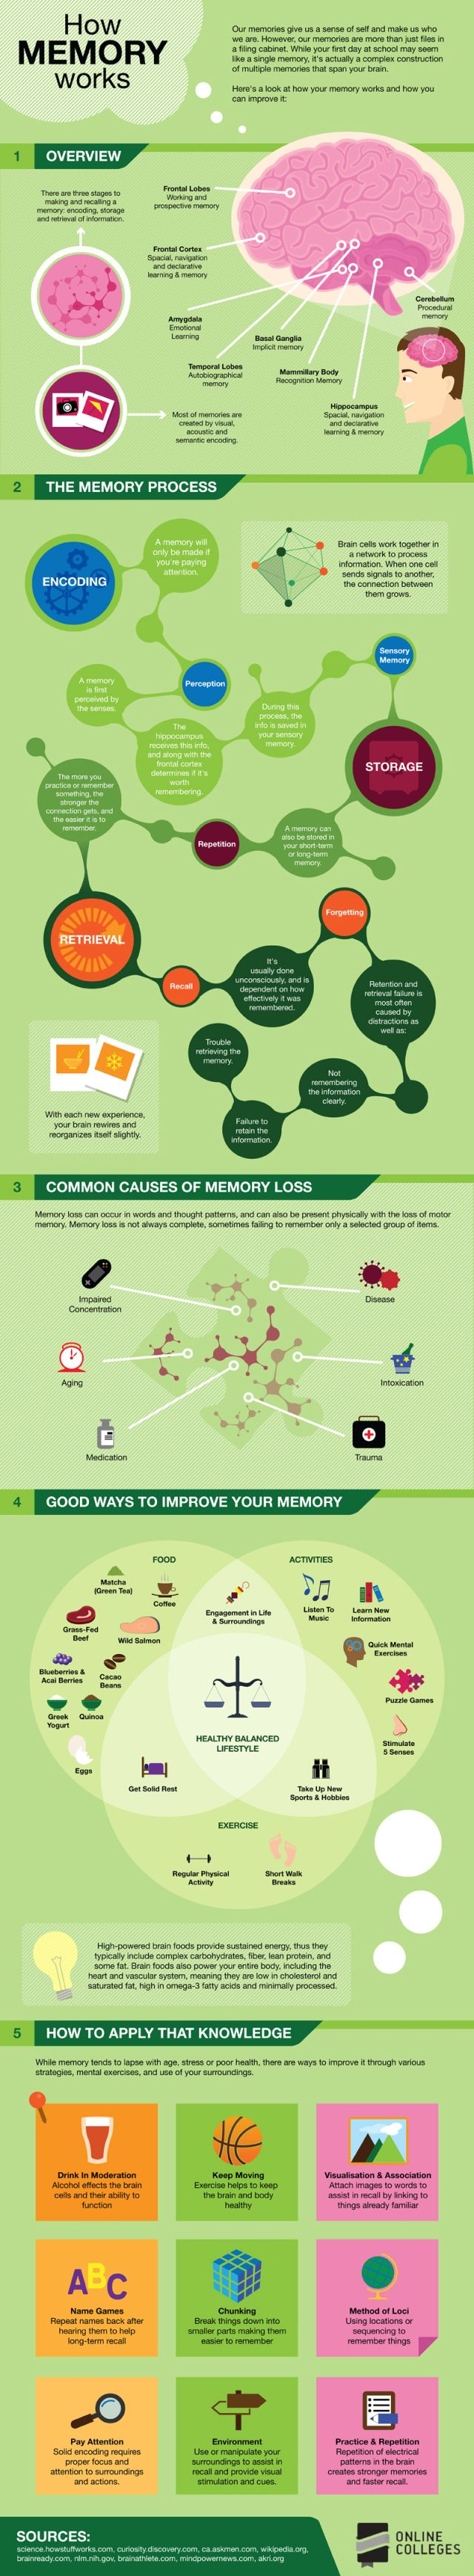 Great infographic, showing how human memory is created. Able to link to company products and brands, remain top of mind to consumers and have a great recall response.